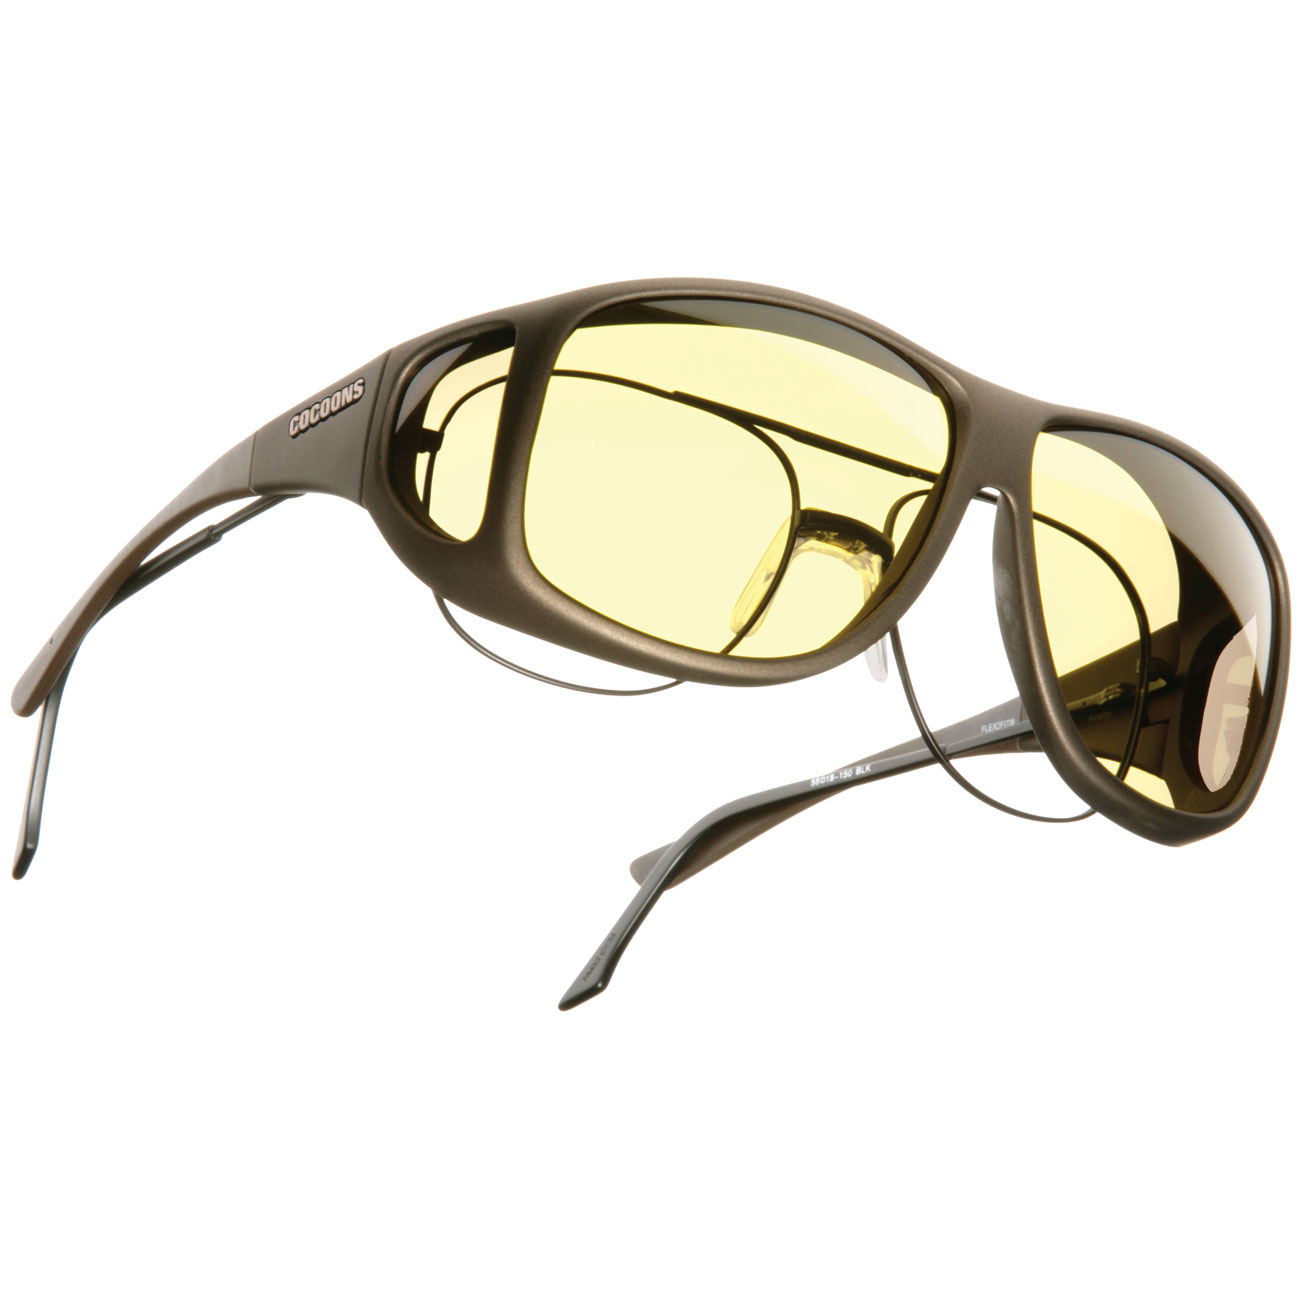 49859cdf4a Cocoons Blue Light Computer Eyewear - Aviator XL